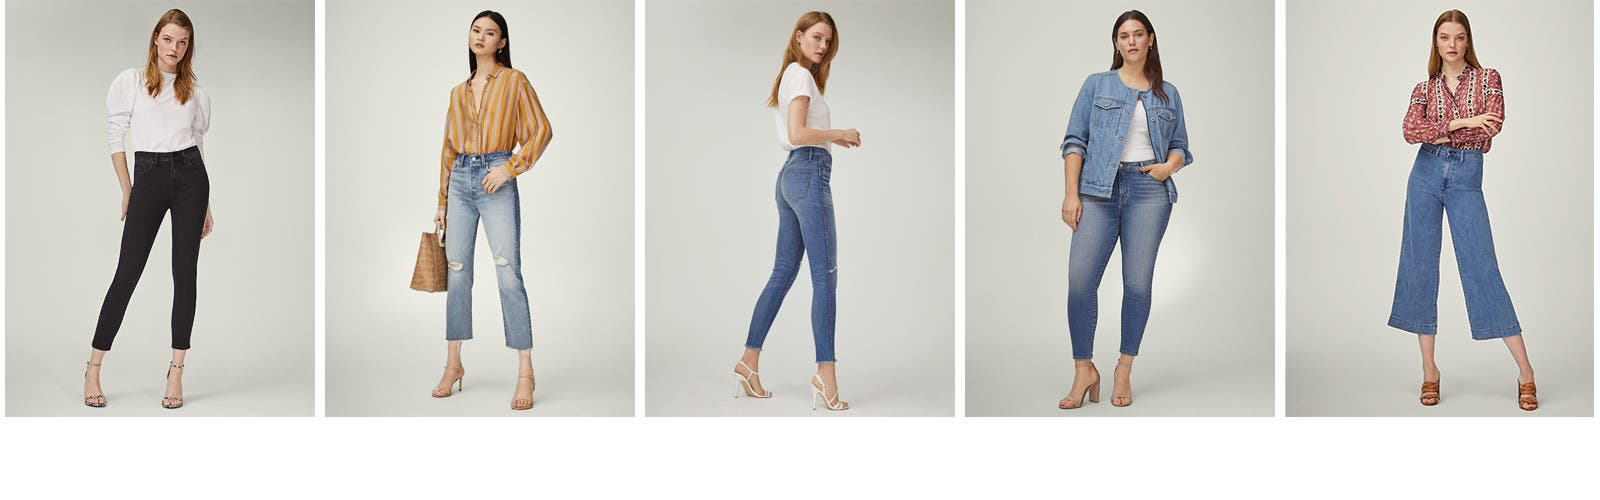 00485c64210 Women's Jeans & Denim | Nordstrom